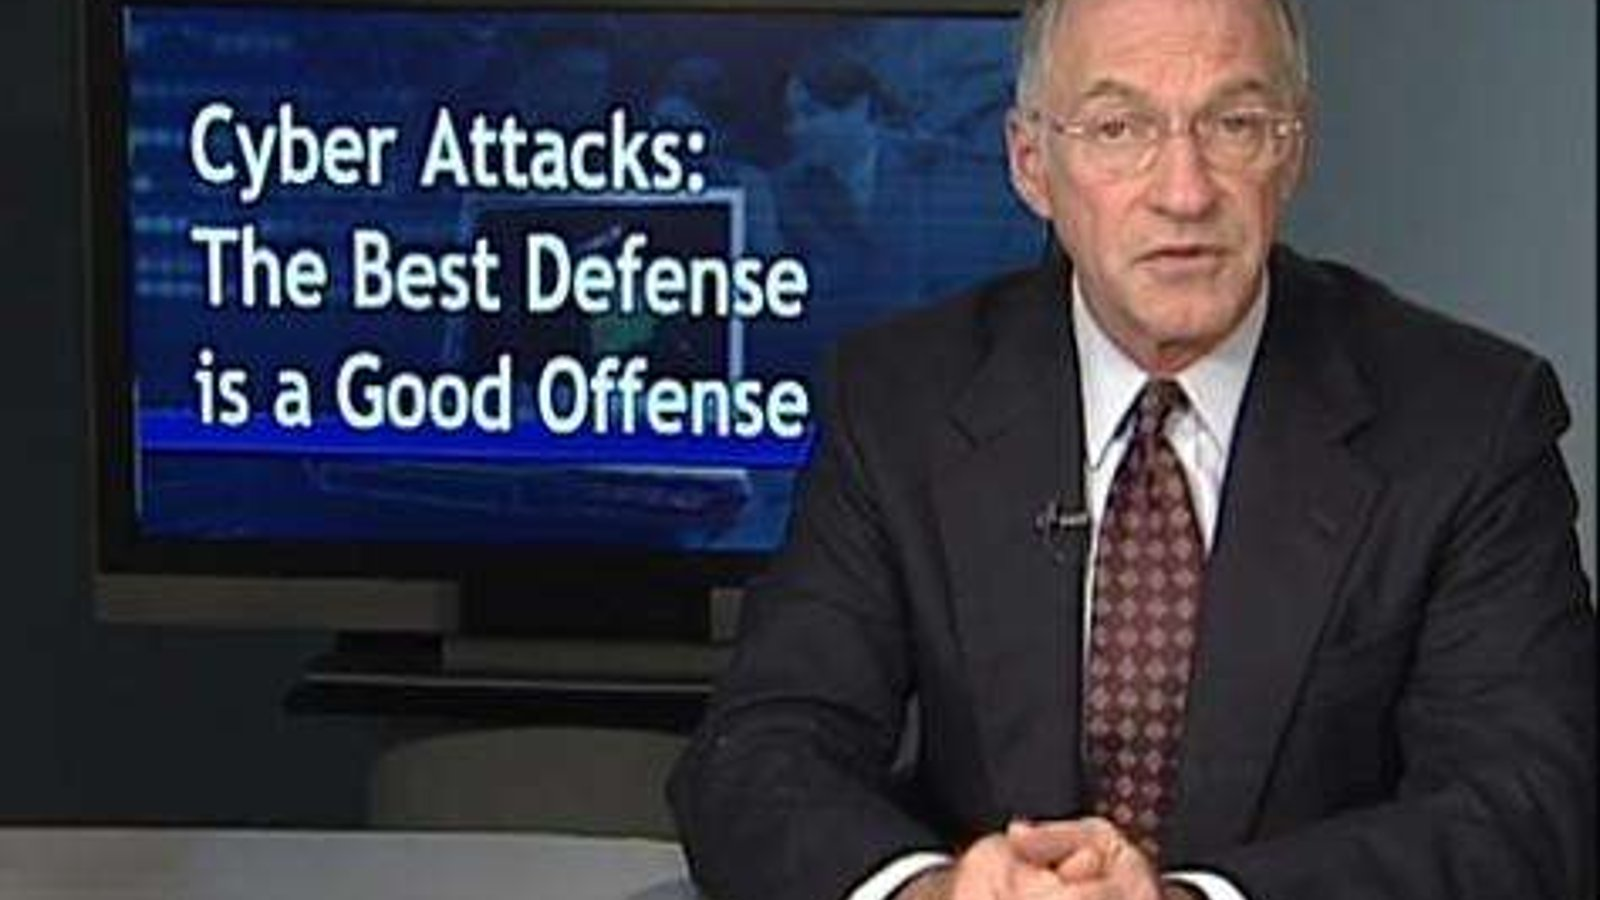 Cyber Attacks: The Best Defense is a Good Offense